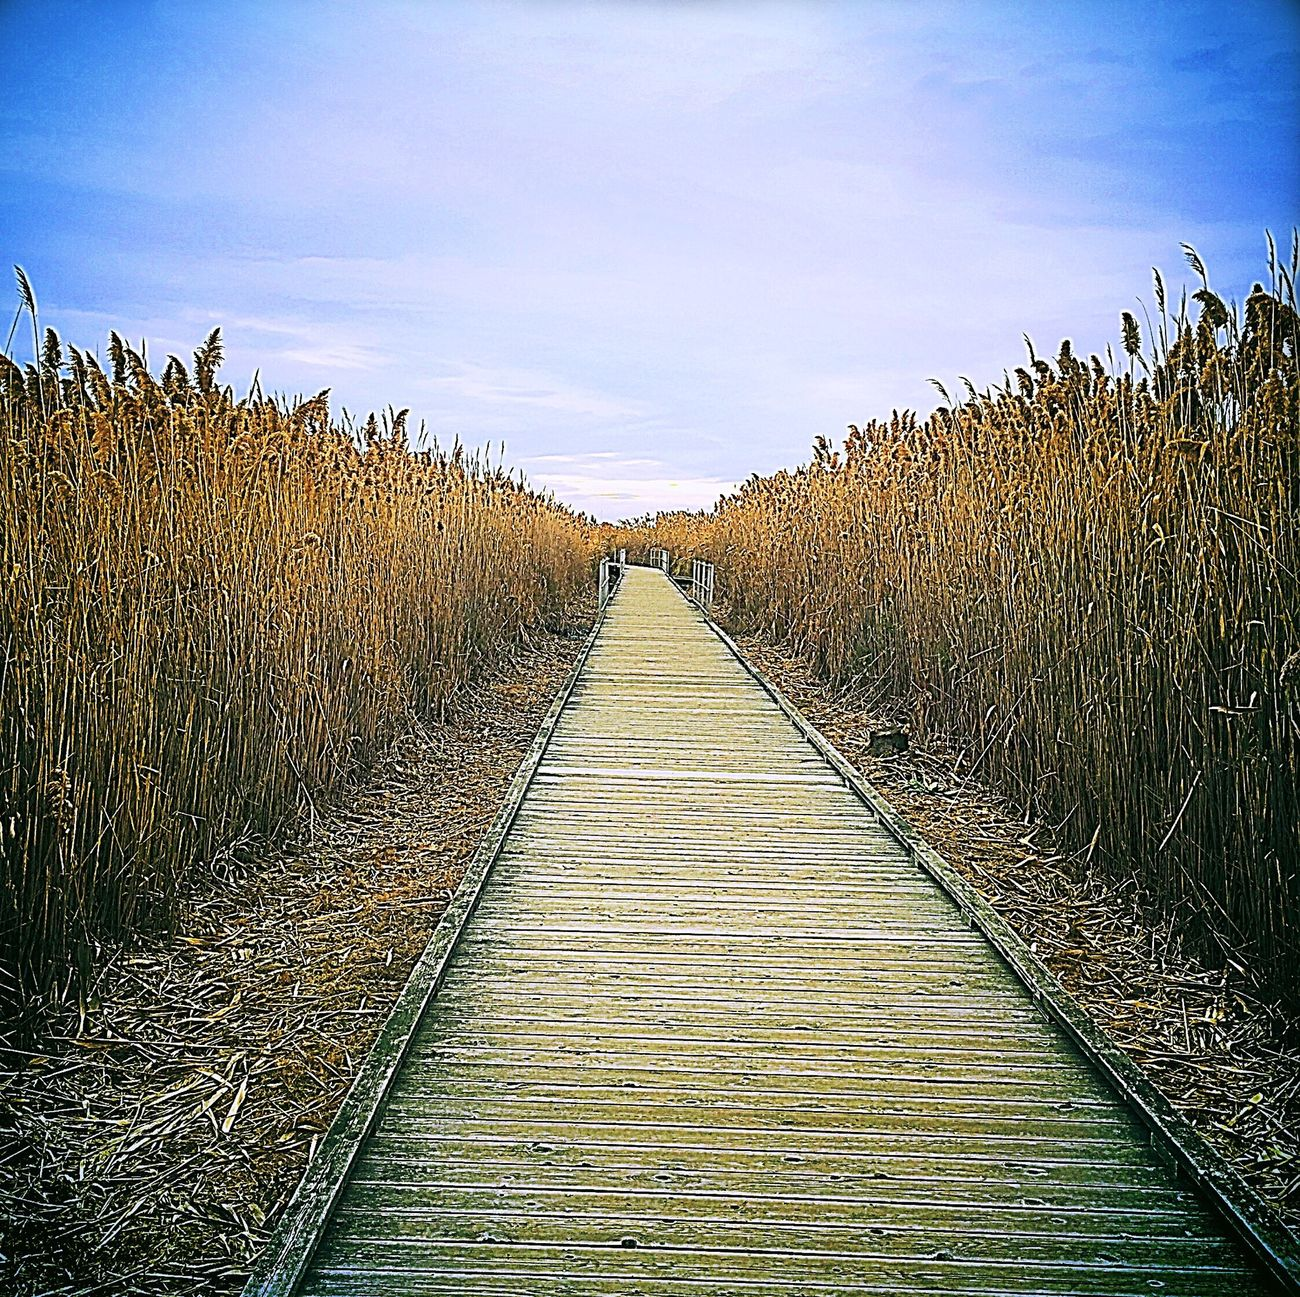 The path to... Wooden Path Mystery Taking A Walk Outdoors Meadowlands